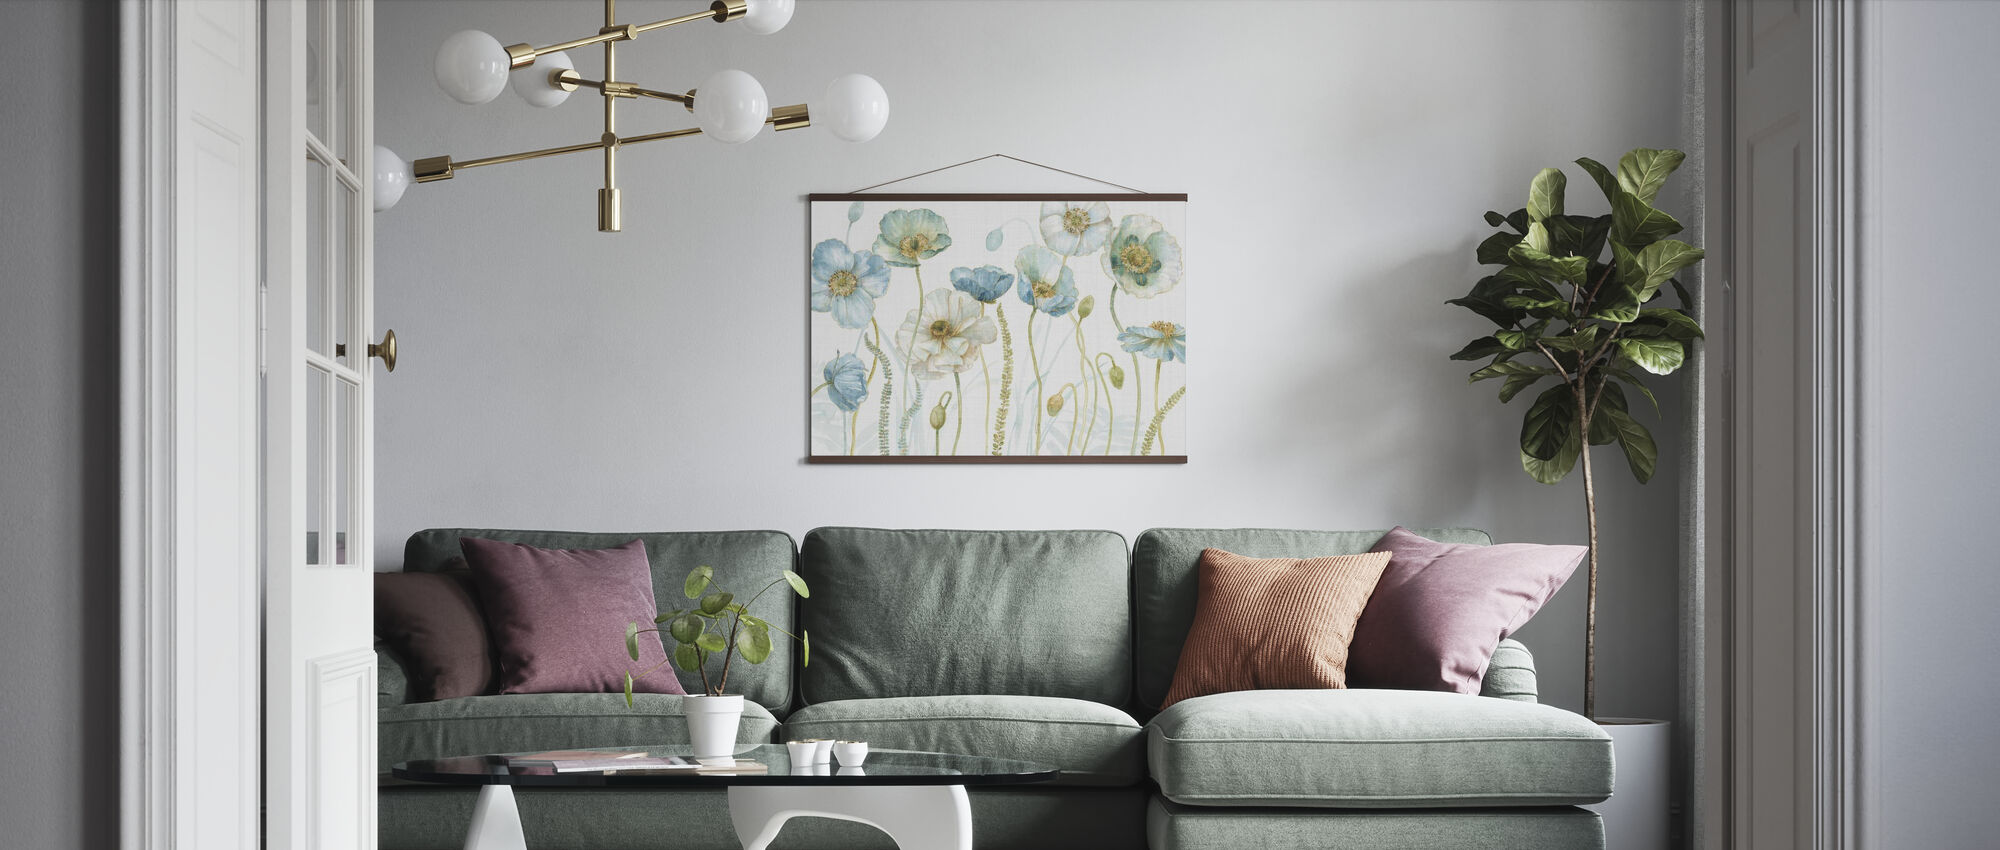 My Greenhouse Flowers on Linen - Poster - Living Room